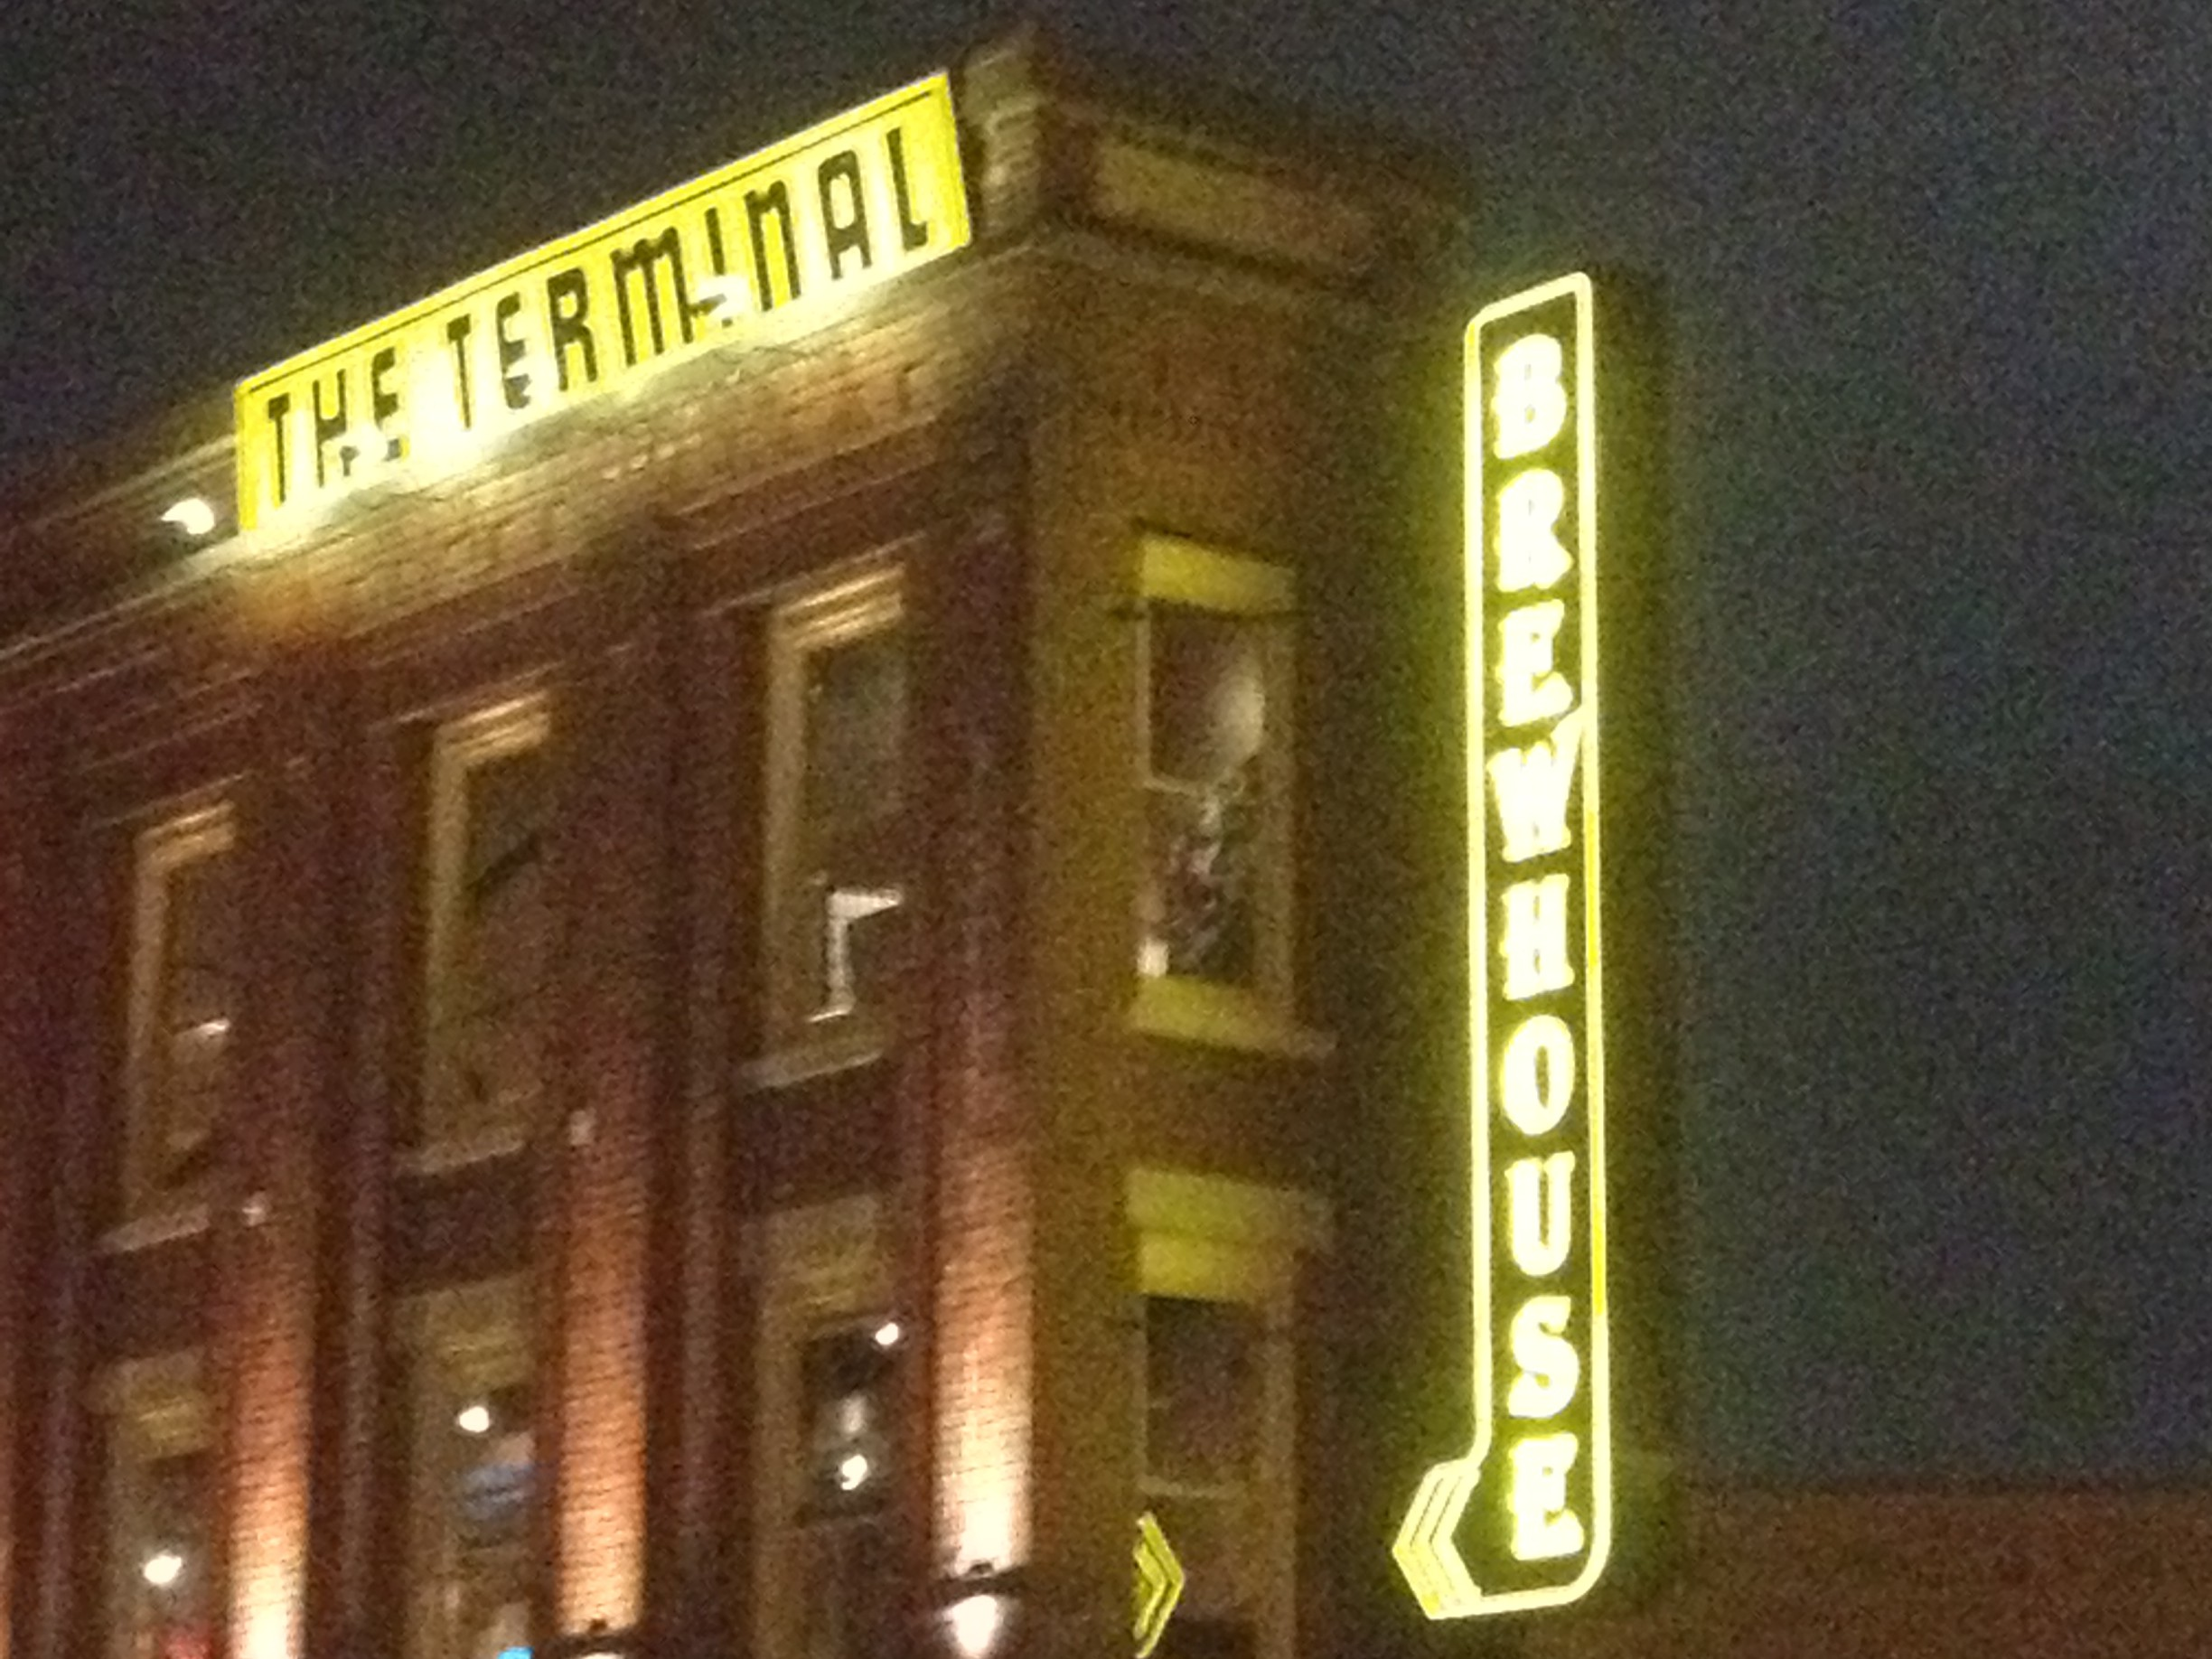 Terminal Brewhouse, The photo